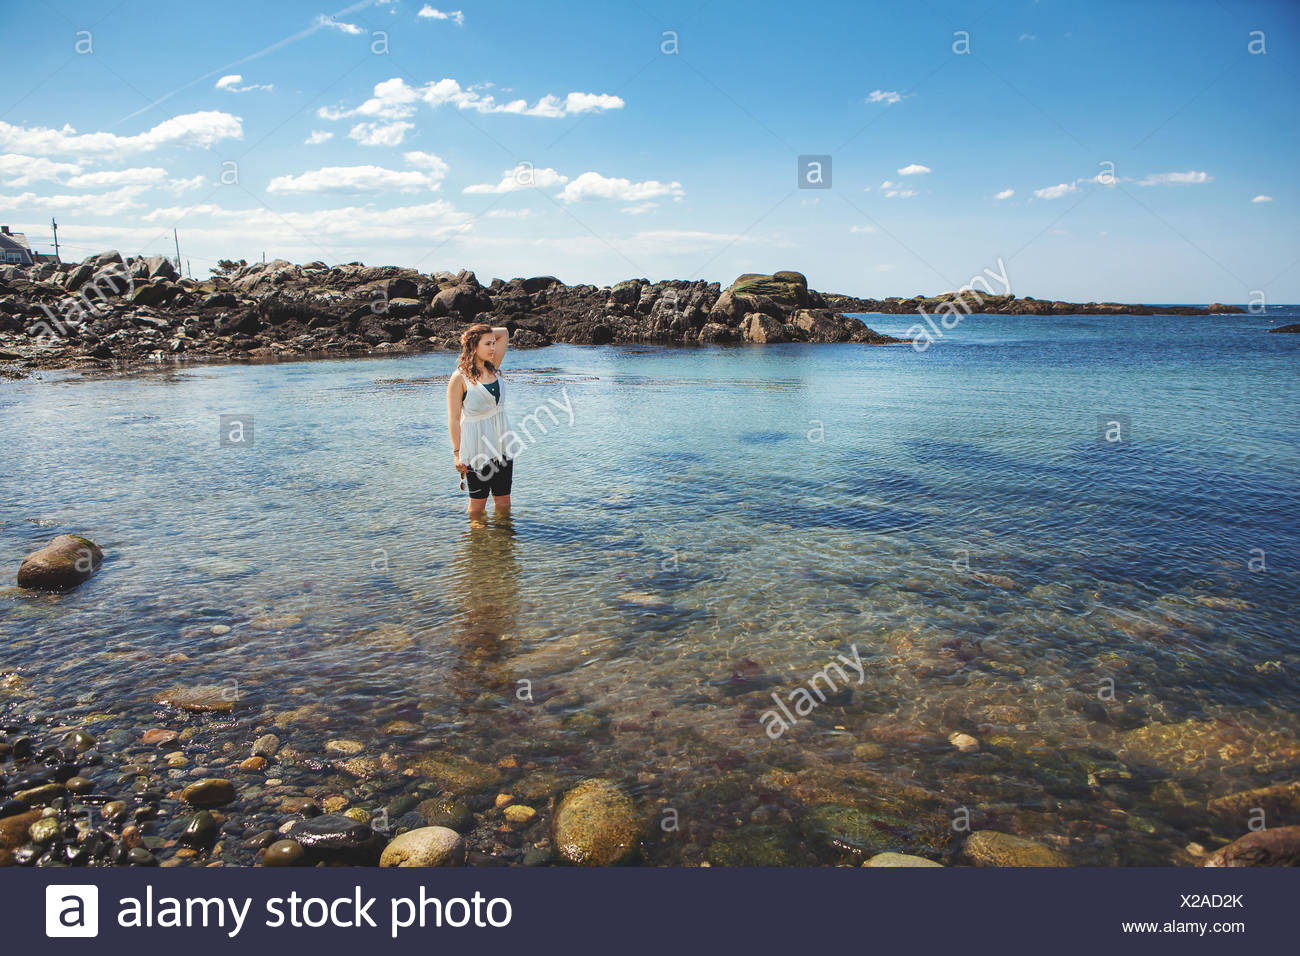 Young woman in the sea at the rocky coastal beach in Biddeford, Maine, USA - Stock Image